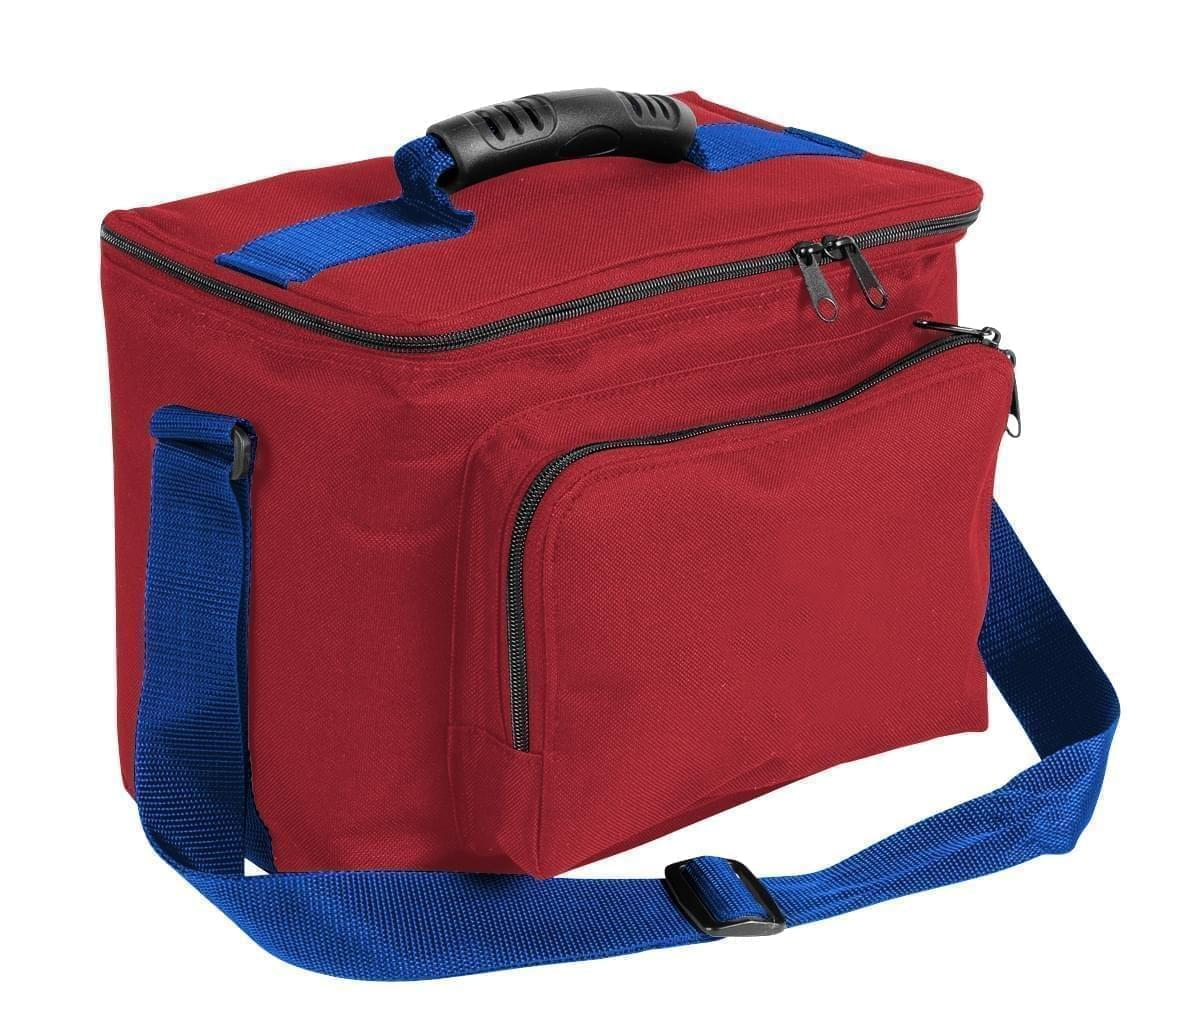 USA Made Nylon Poly Lunch Coolers, Red-Royal Blue, 11001161-AZ3